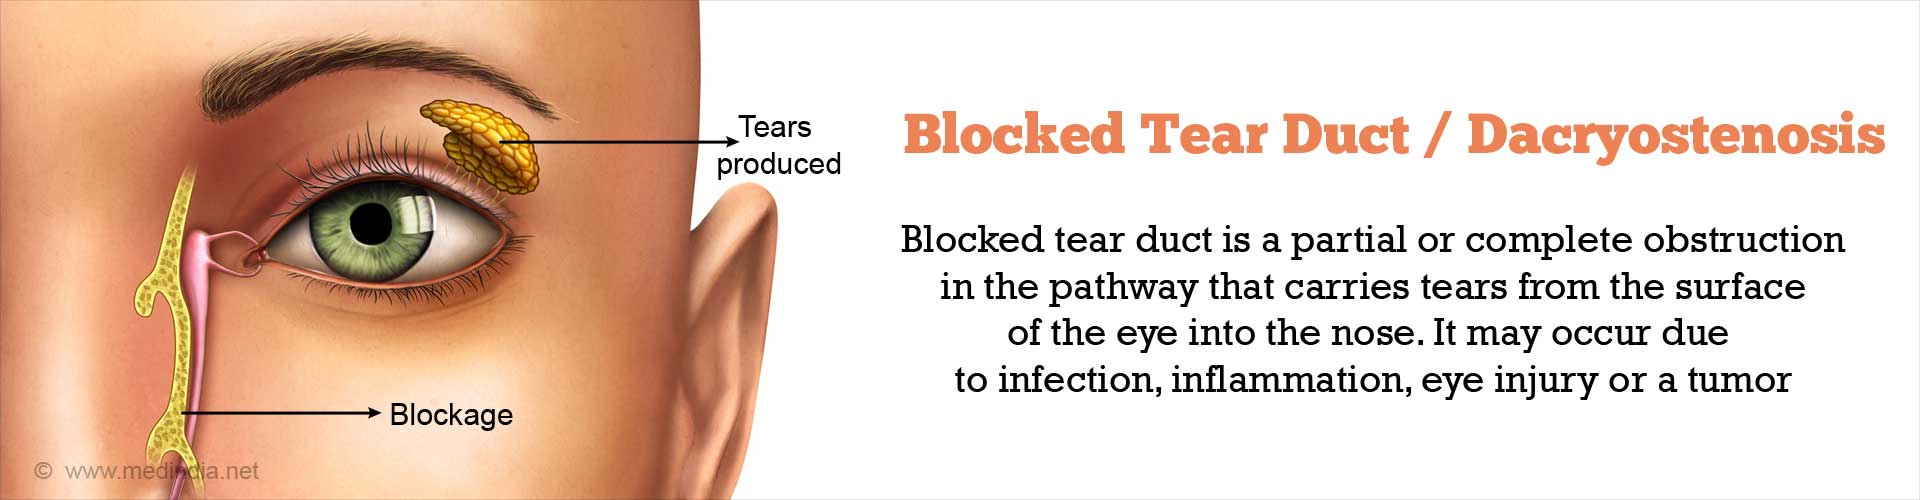 Blocked Tear Duct / Dacryostenosis